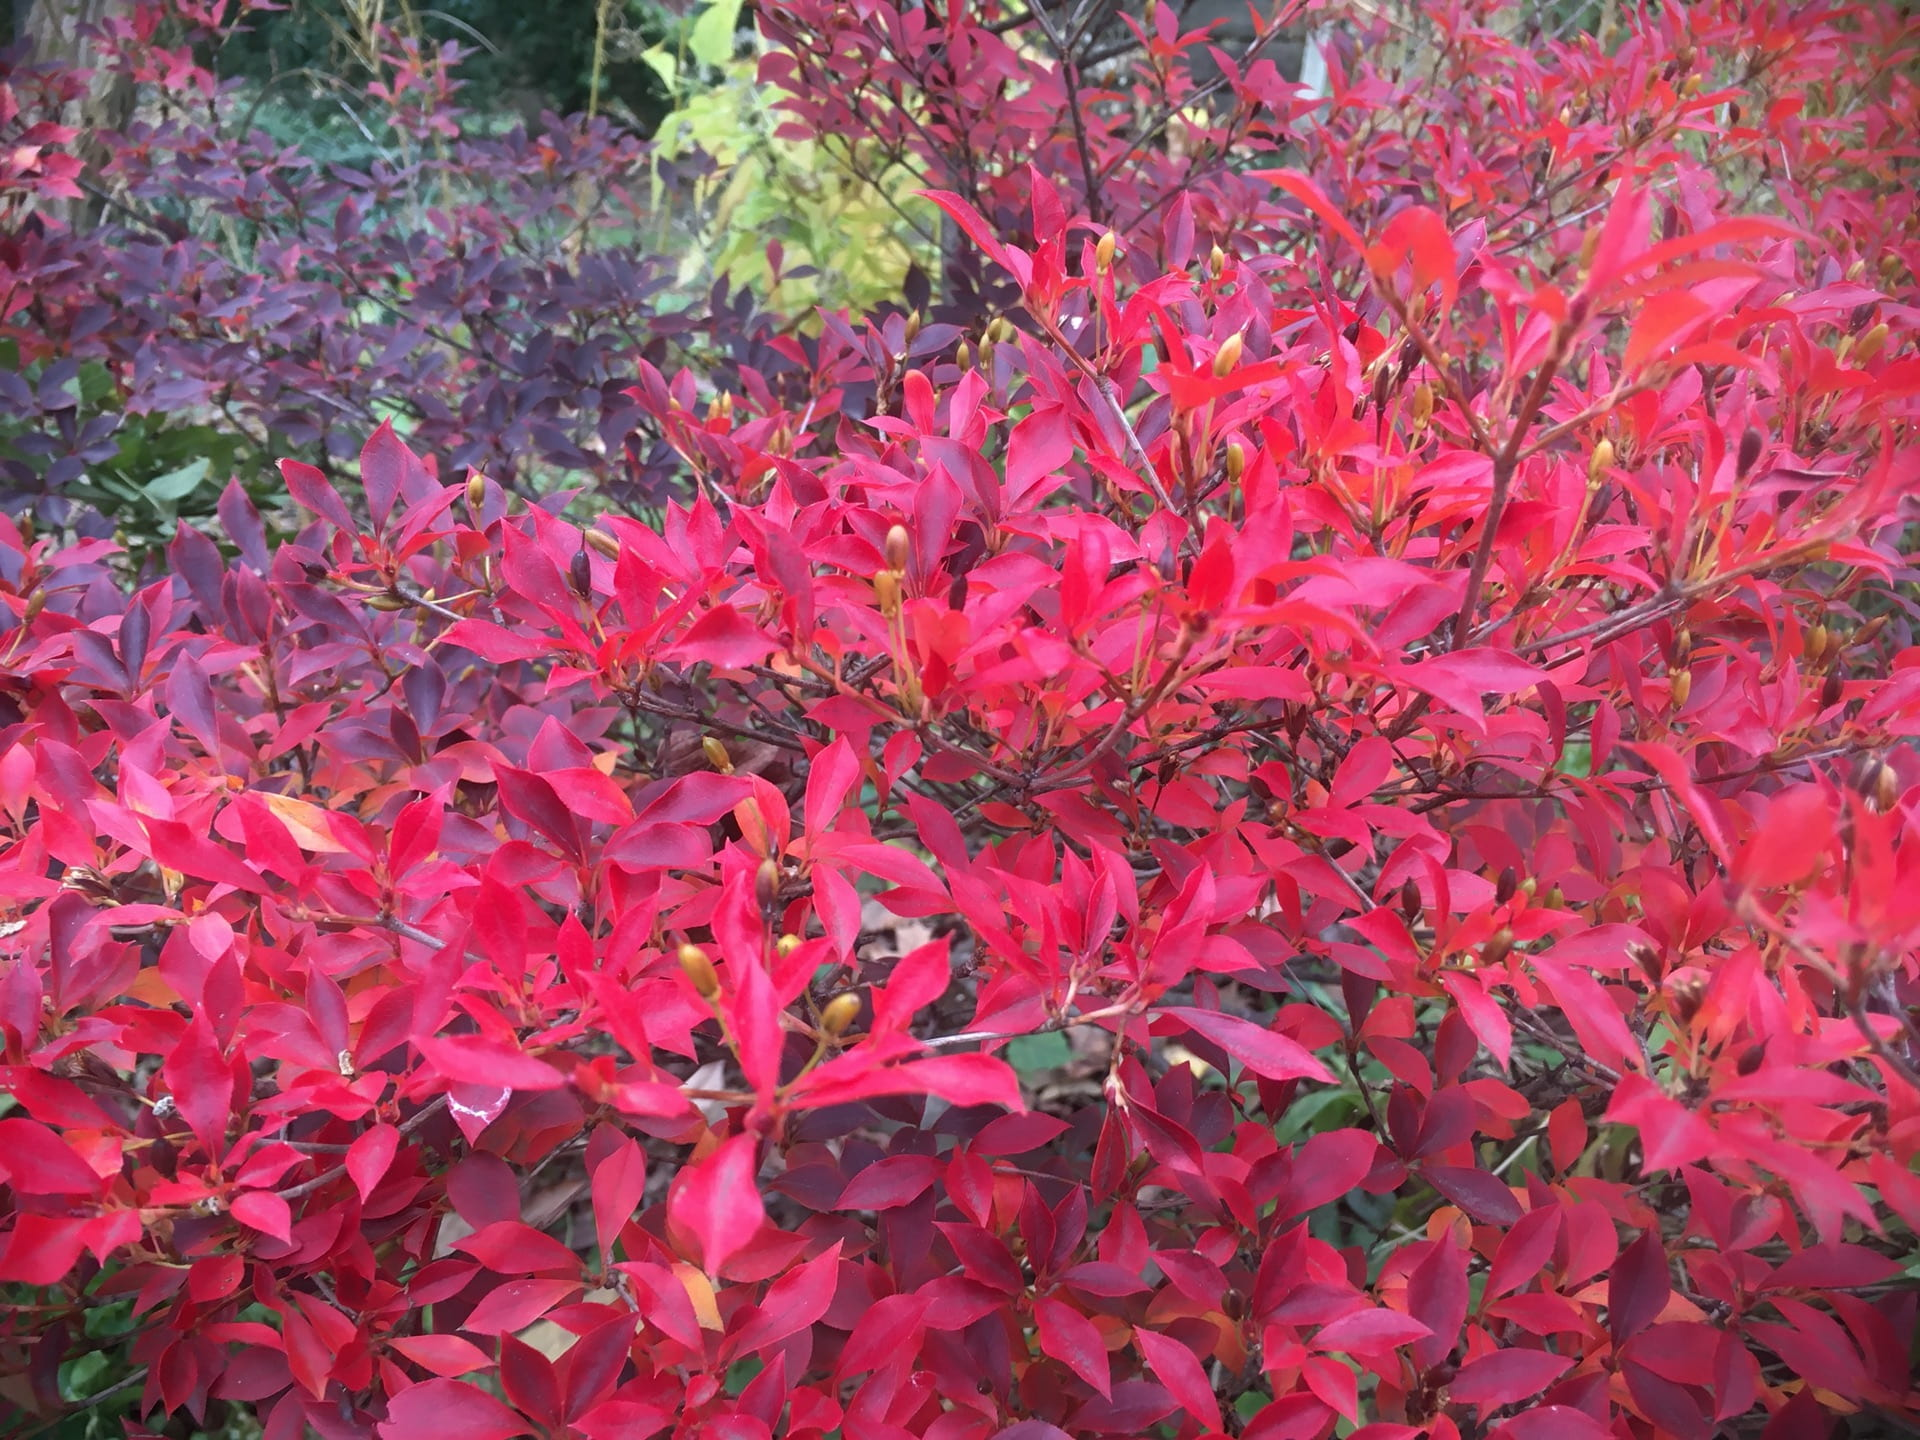 The foliage of Enkianthus perulatus putting on a fiery show.